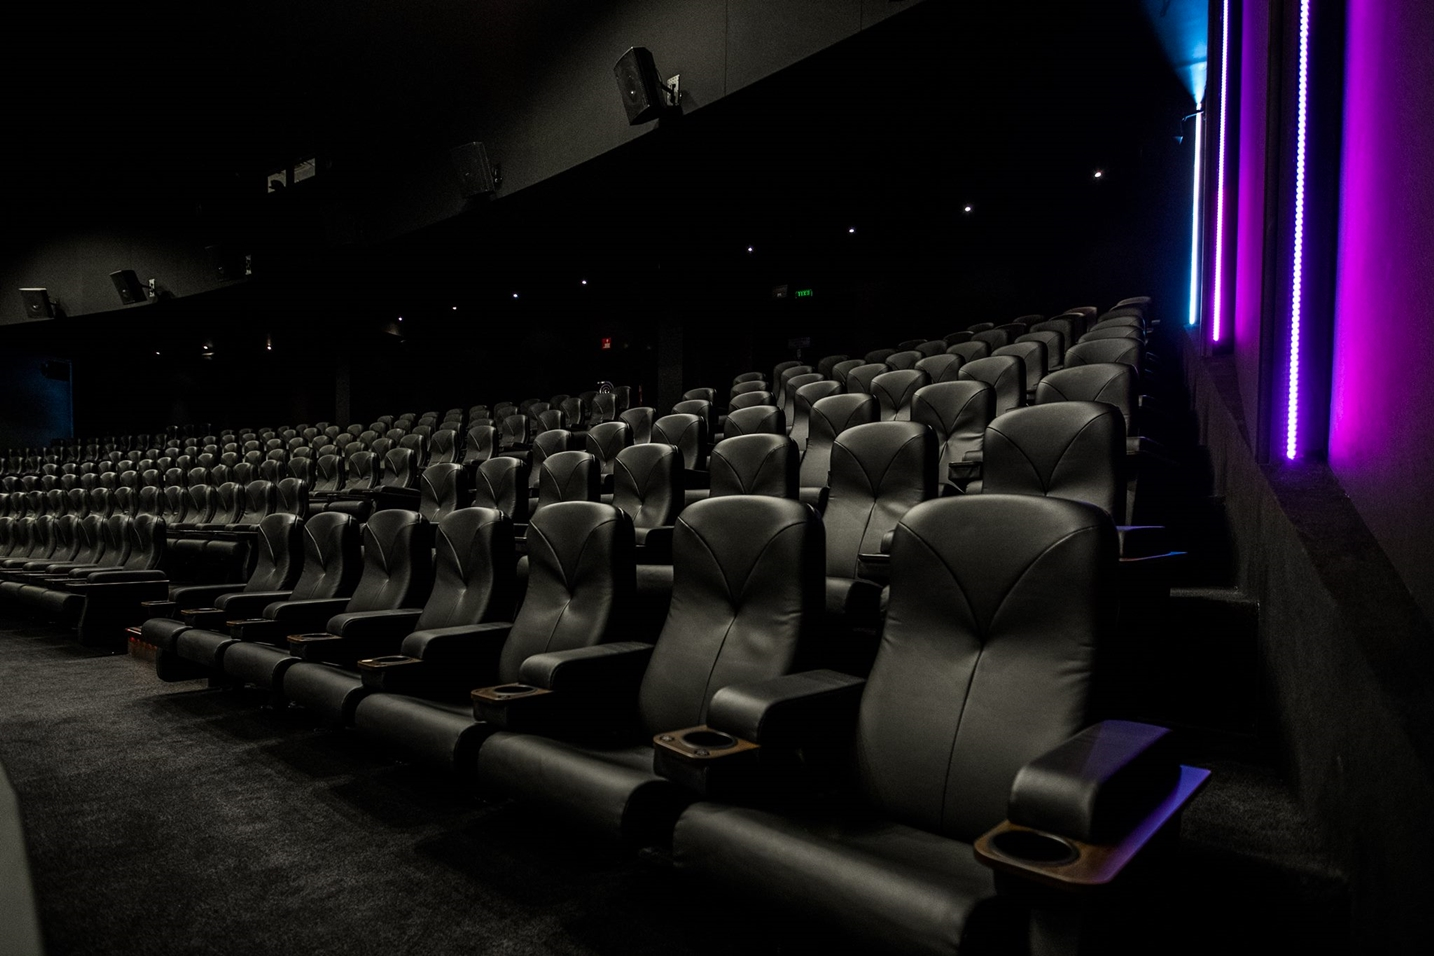 Acoustics and the Movie Theater - Radio 1 - Plexus - Plexus Radio - Acoustics - Movie - Theater